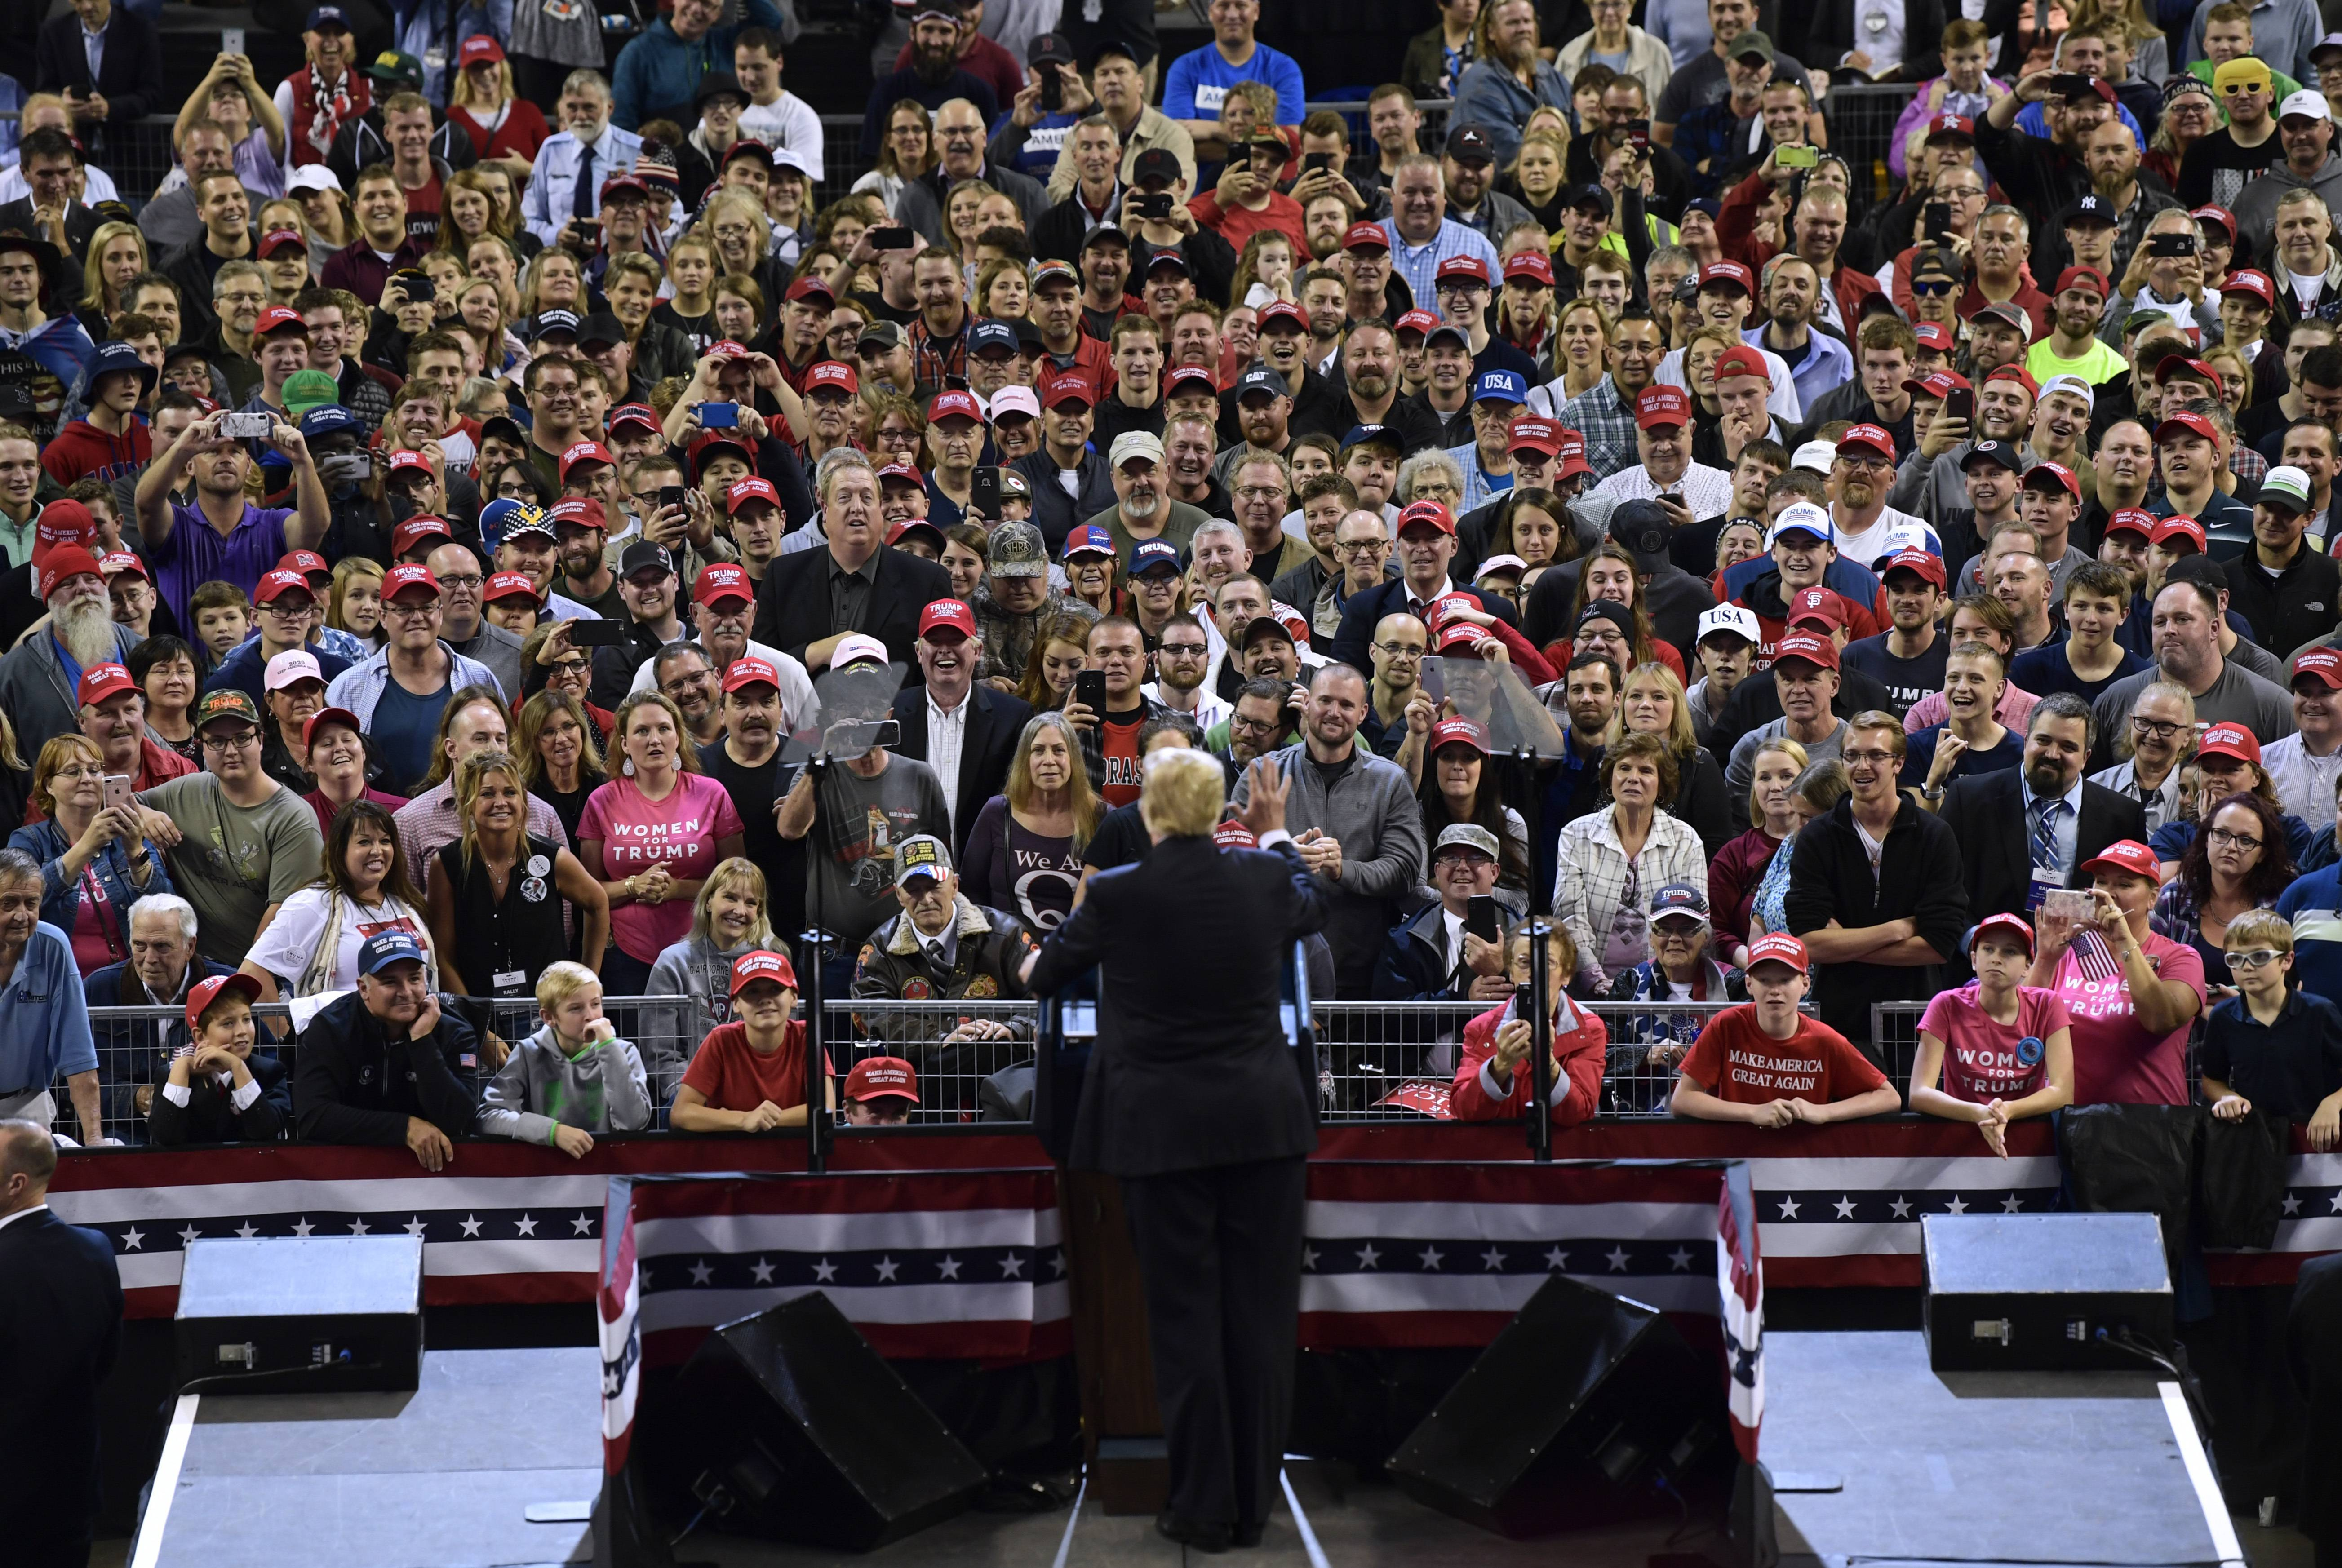 President Donald Trump speaks at a rally in Council Bluffs, Iowa, Tuesday, Oct. 9, 2018.